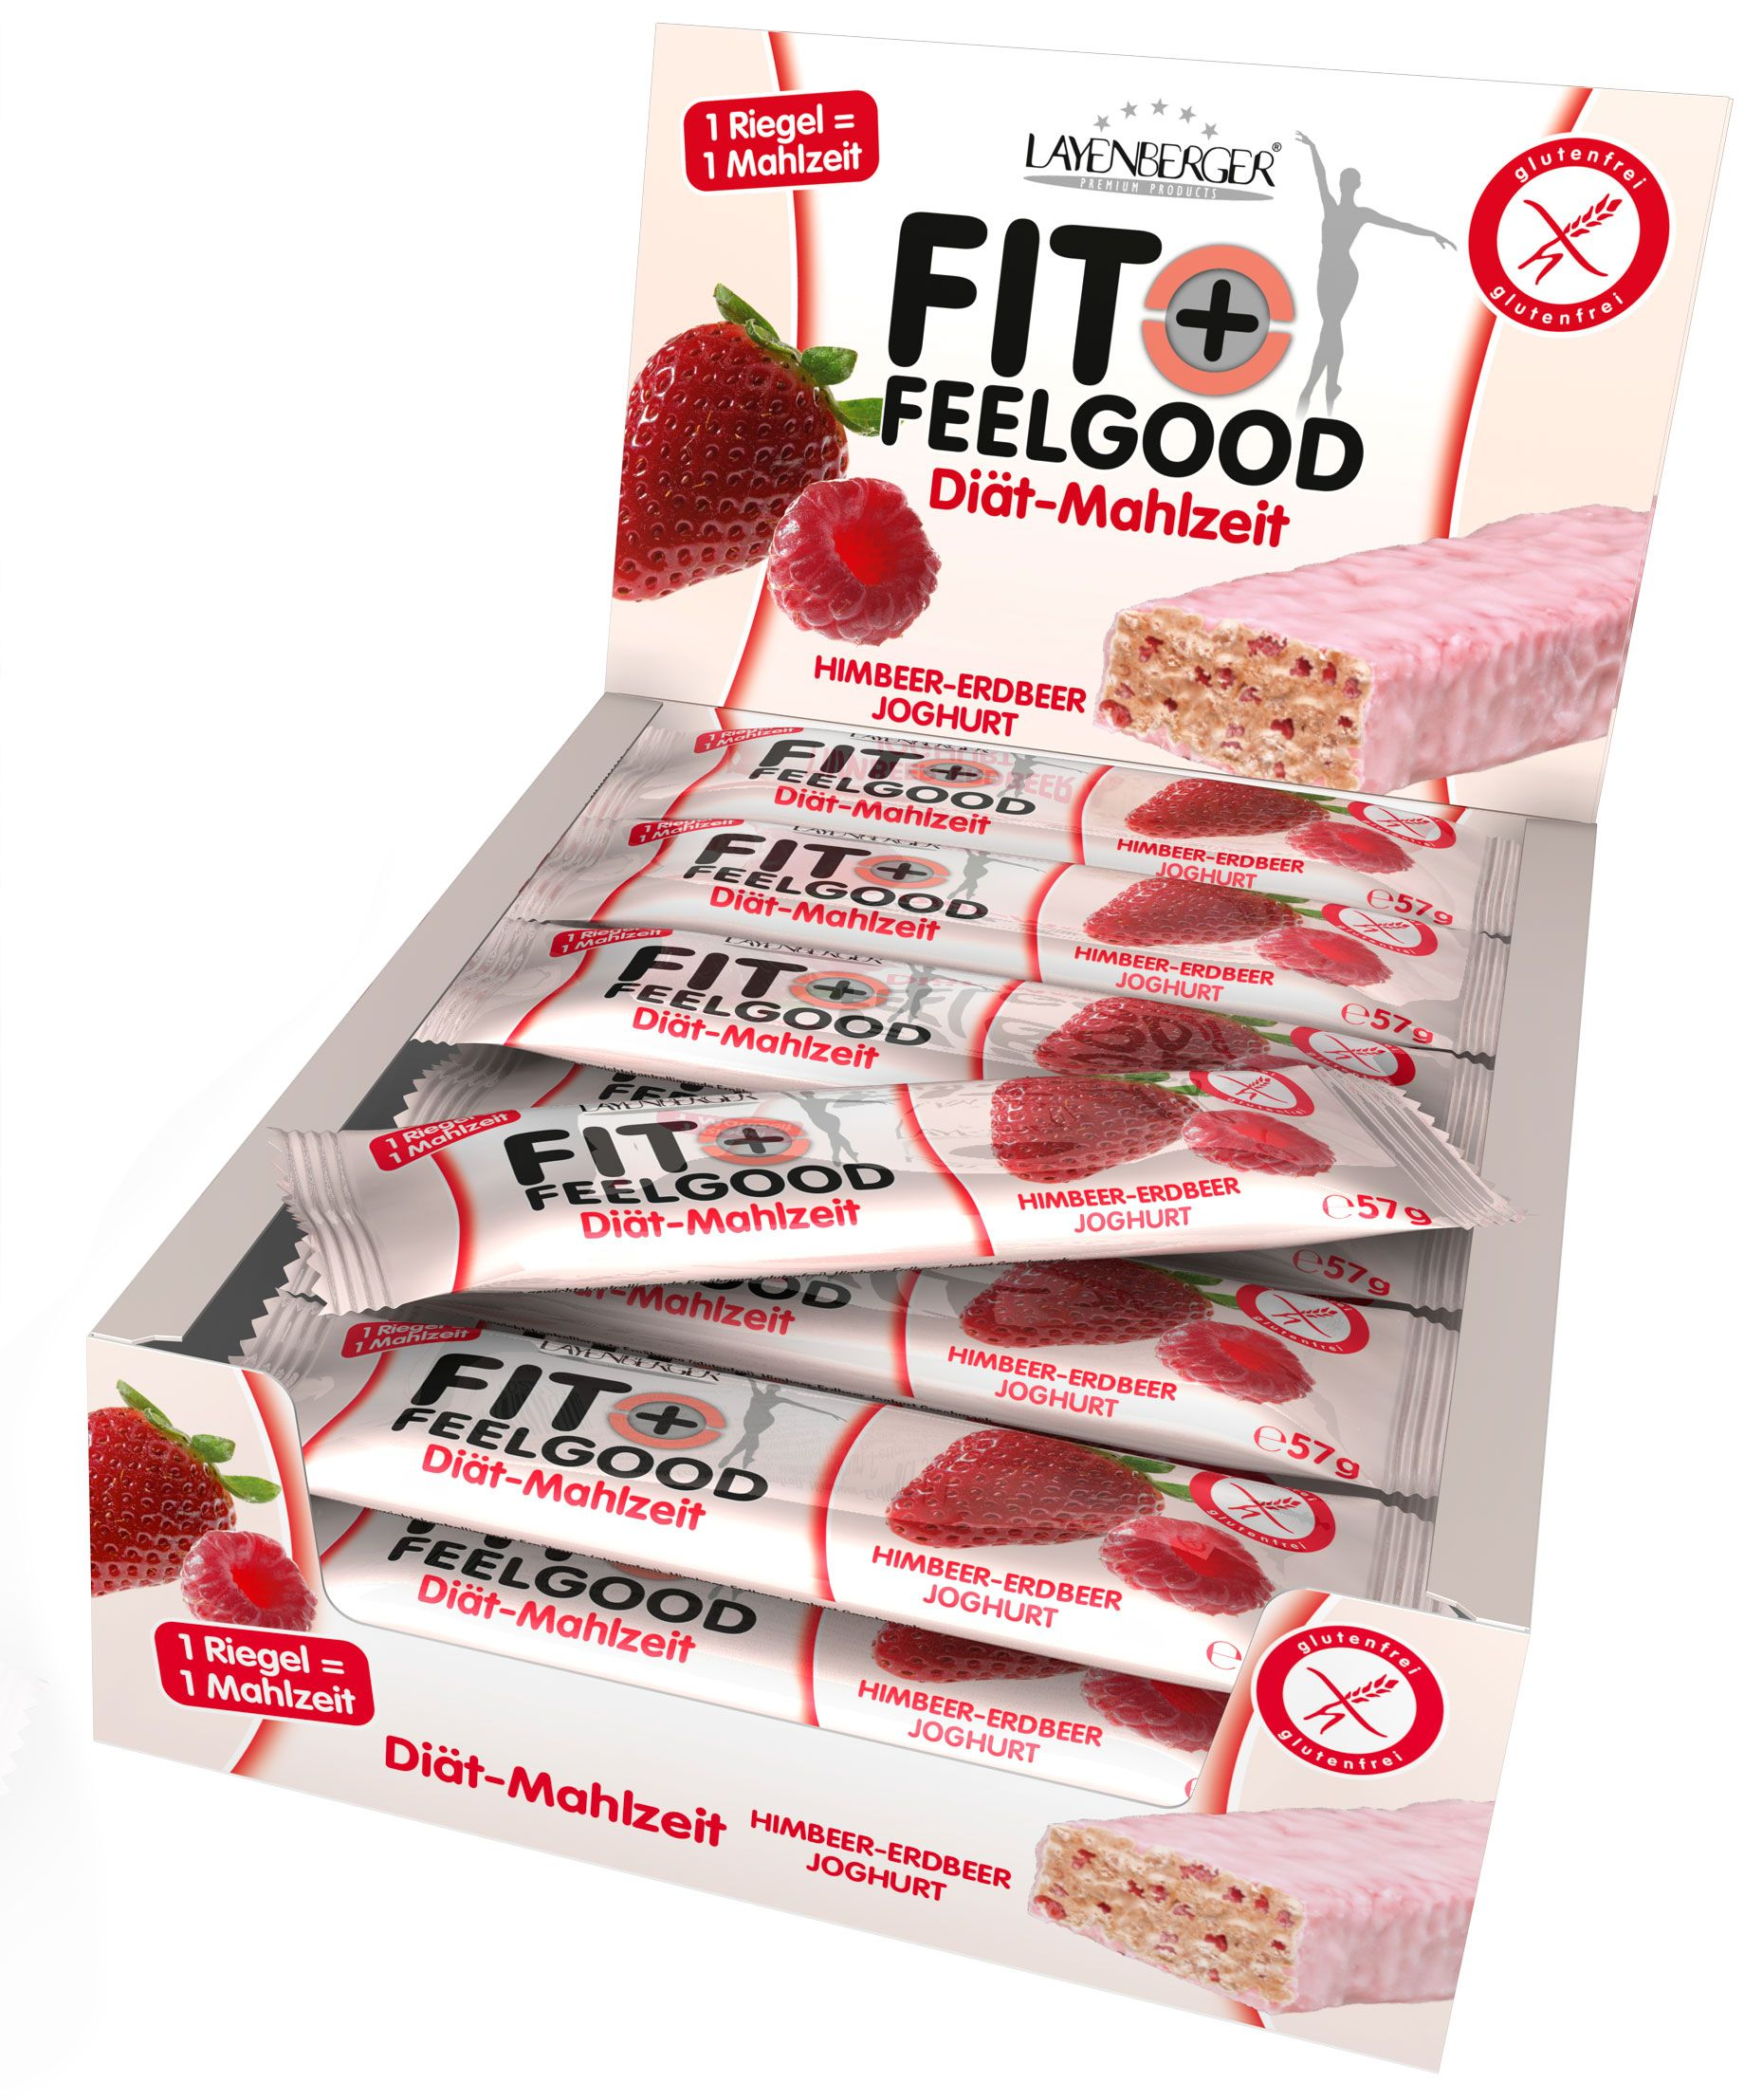 Fit+Feelgood Riegel - 15x57g - Himbeer-Erdbeer-Joghurt